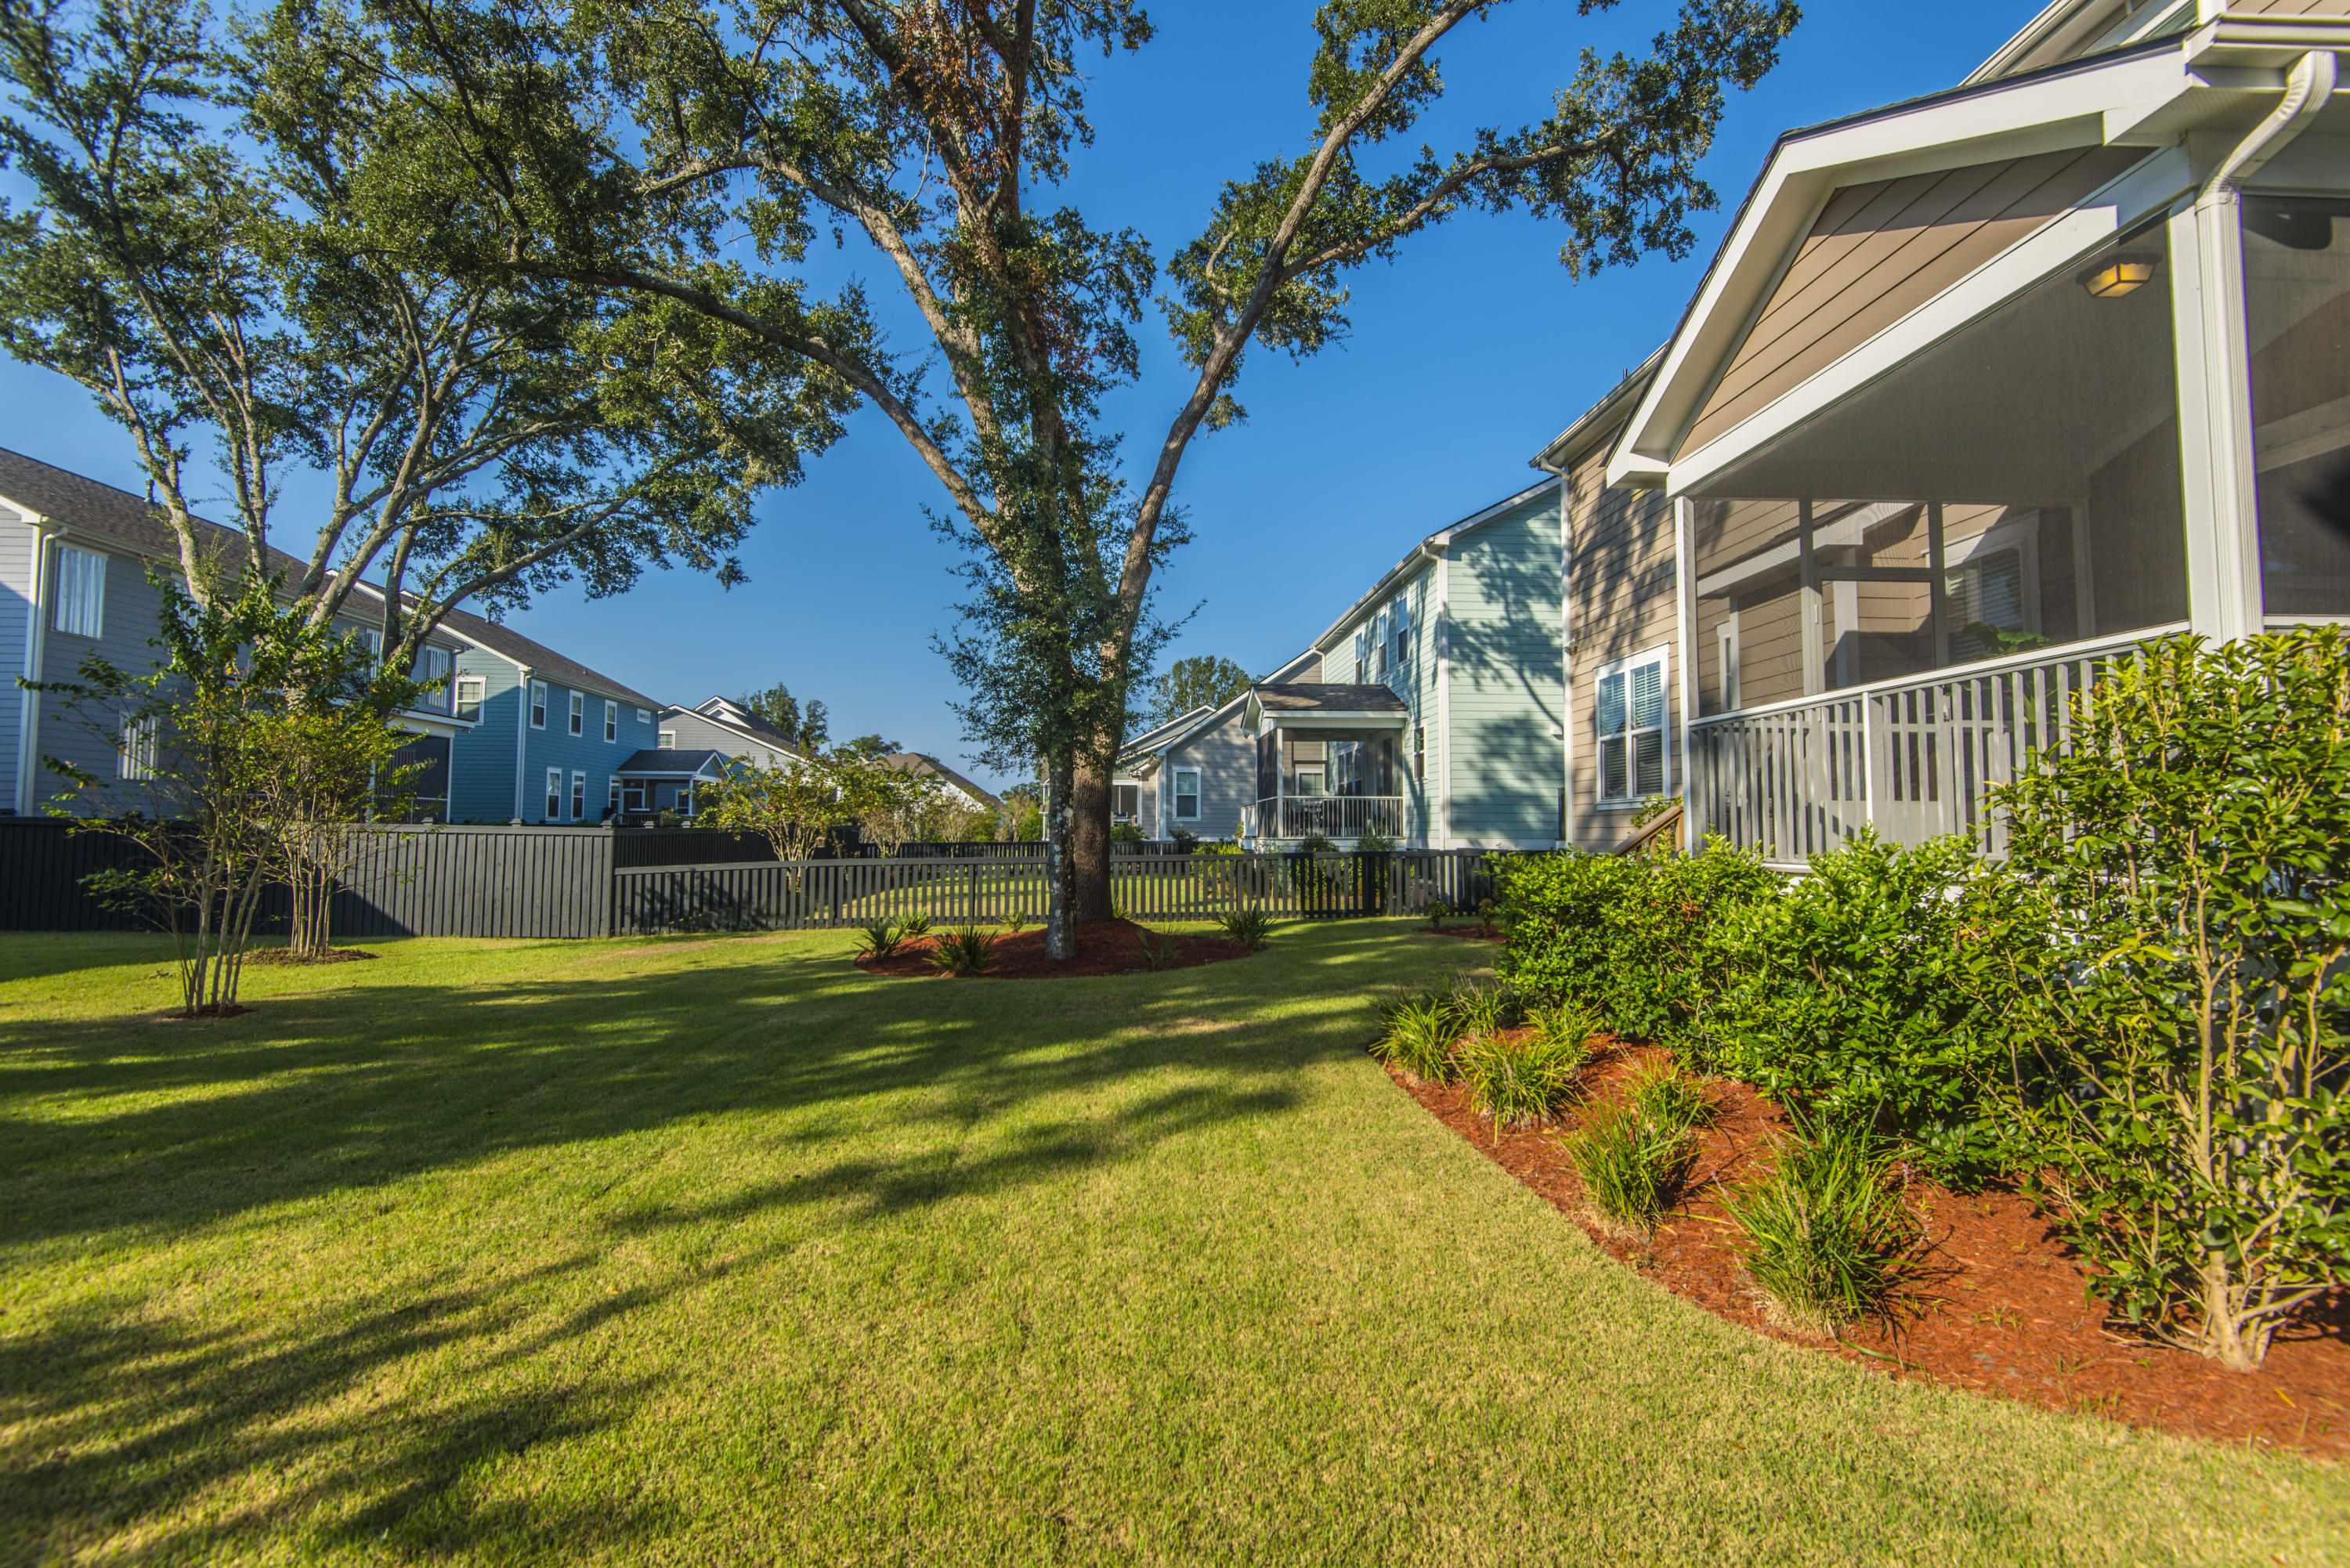 Oyster Point Homes For Sale - 2300 Skyler, Mount Pleasant, SC - 24